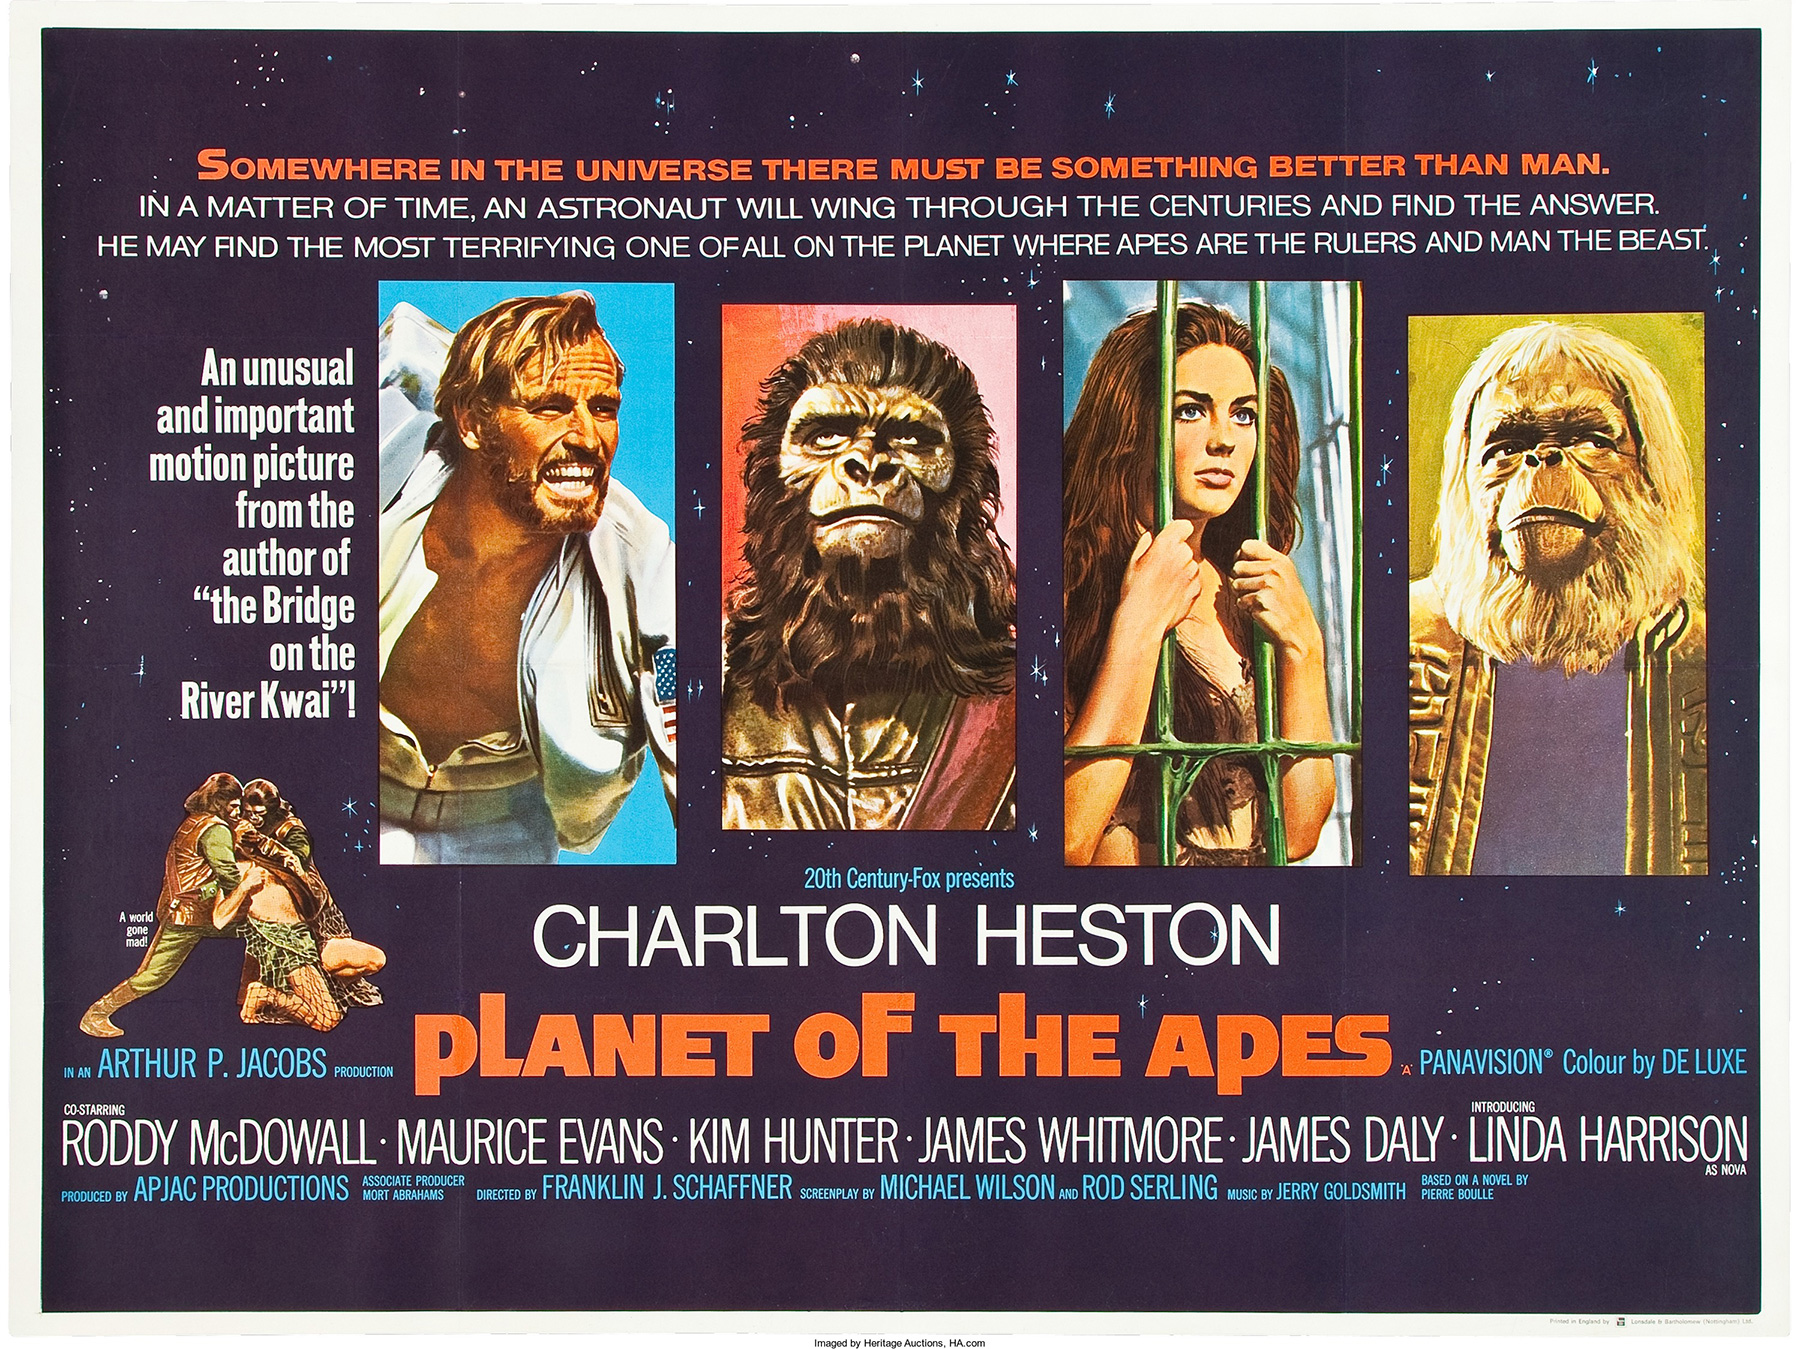 planet-of-the-apes-uk-poster_1800.jpg